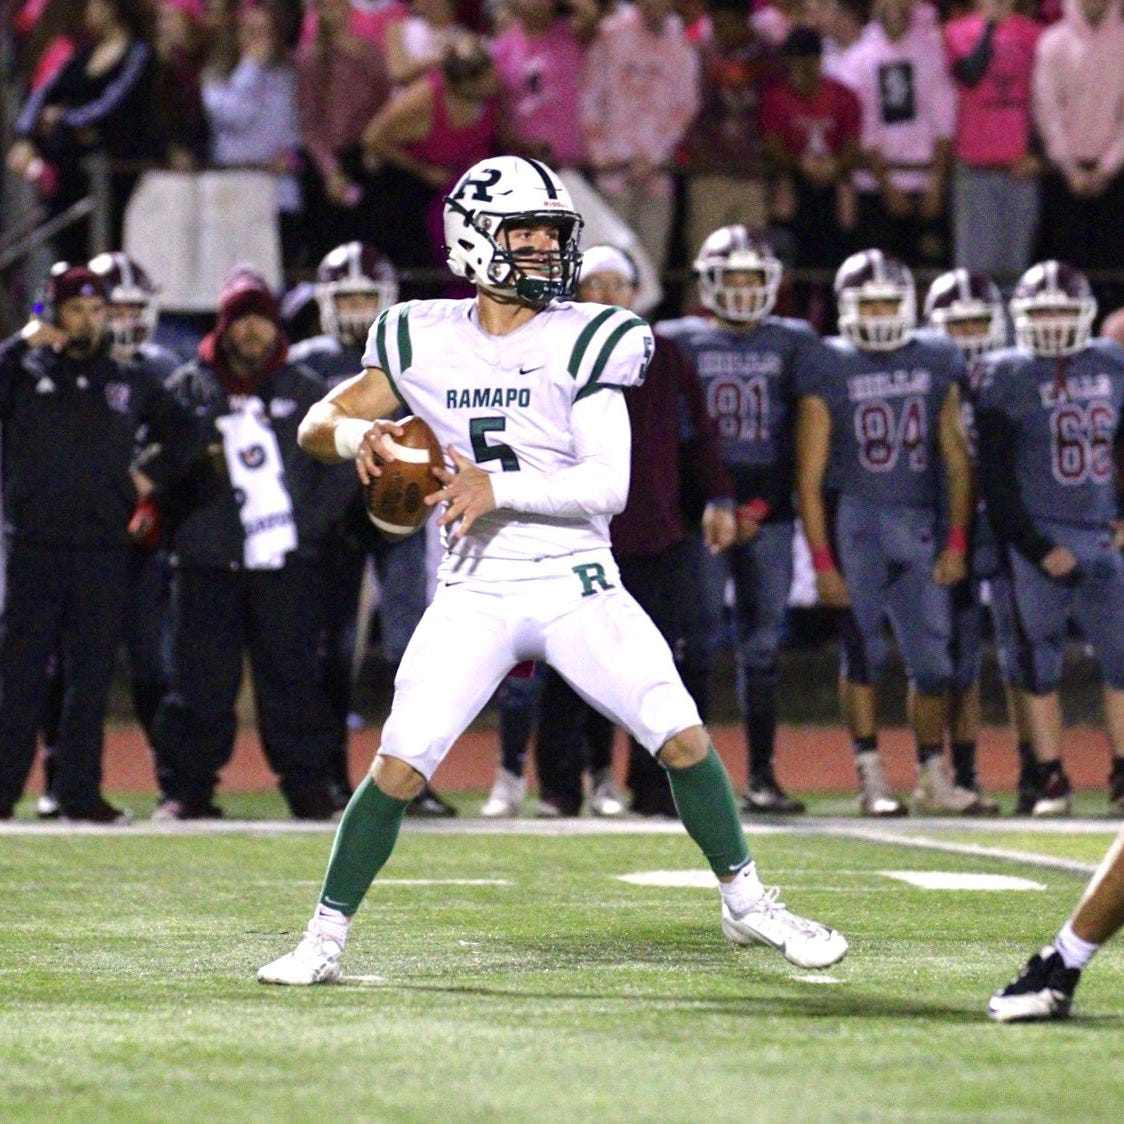 Ramapo football runs away from Wayne Hills